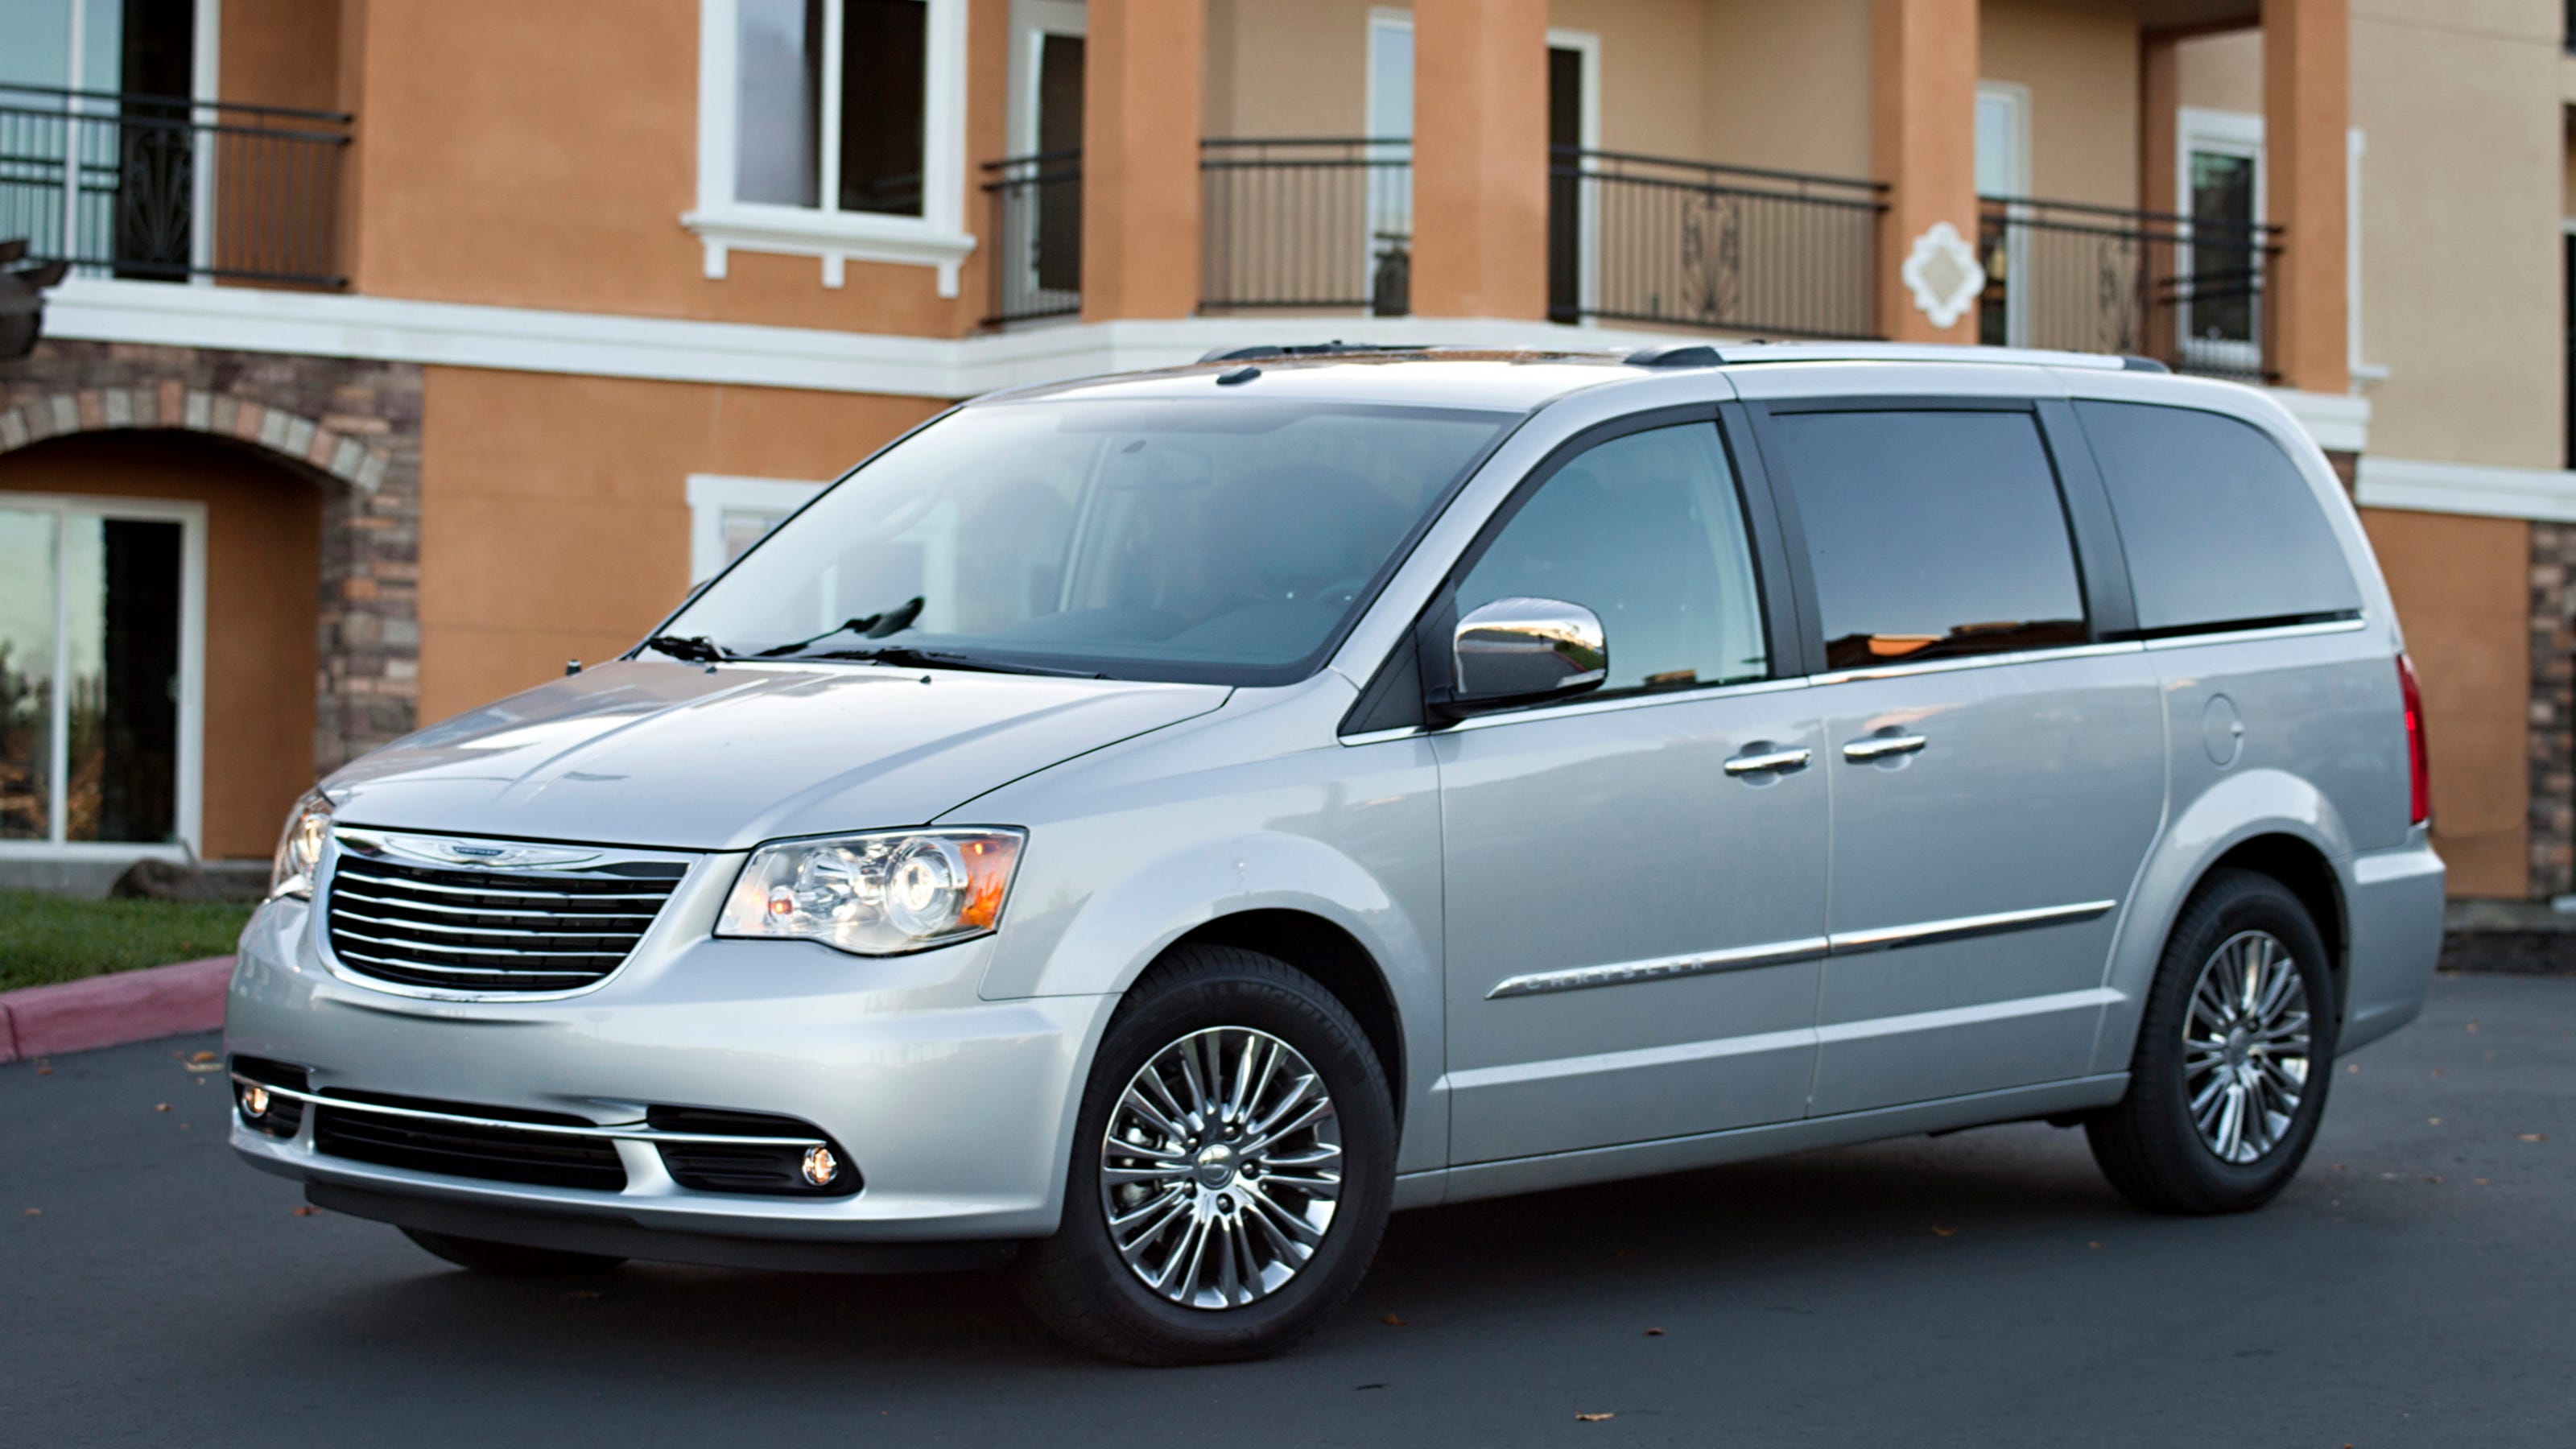 Chrysler Recalls 700 000 Vehicles To Fix Ignition Switches